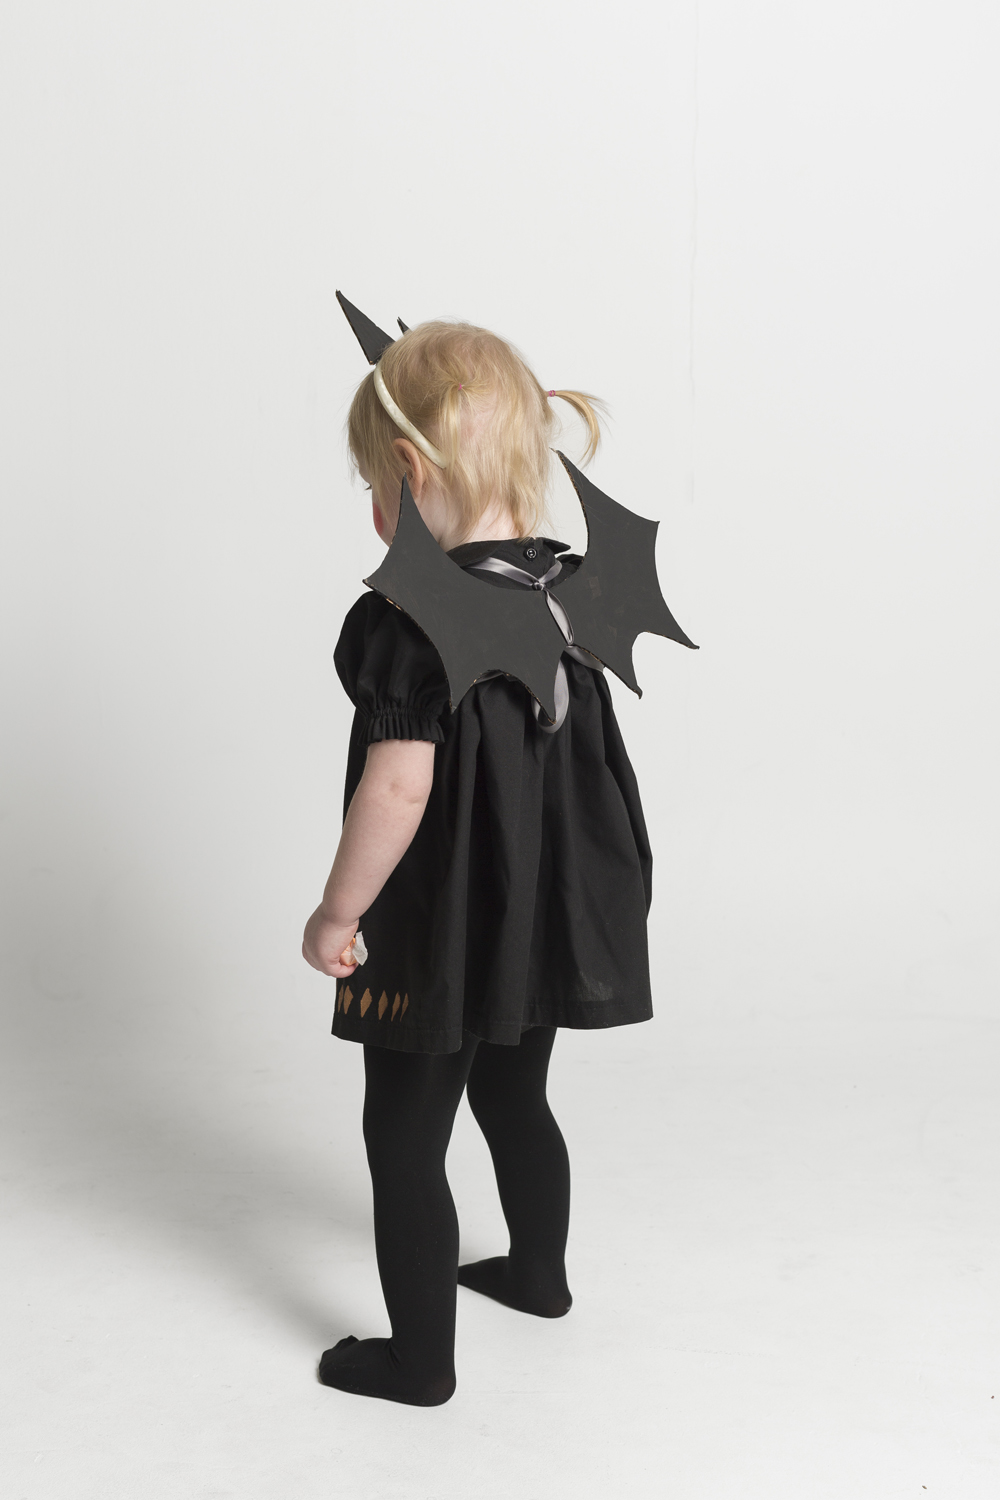 ... Baby Bat Costume with Cardboard Wings and Ears ... & Baby Bat Costume with Cardboard Wings and Ears - Mer Mag